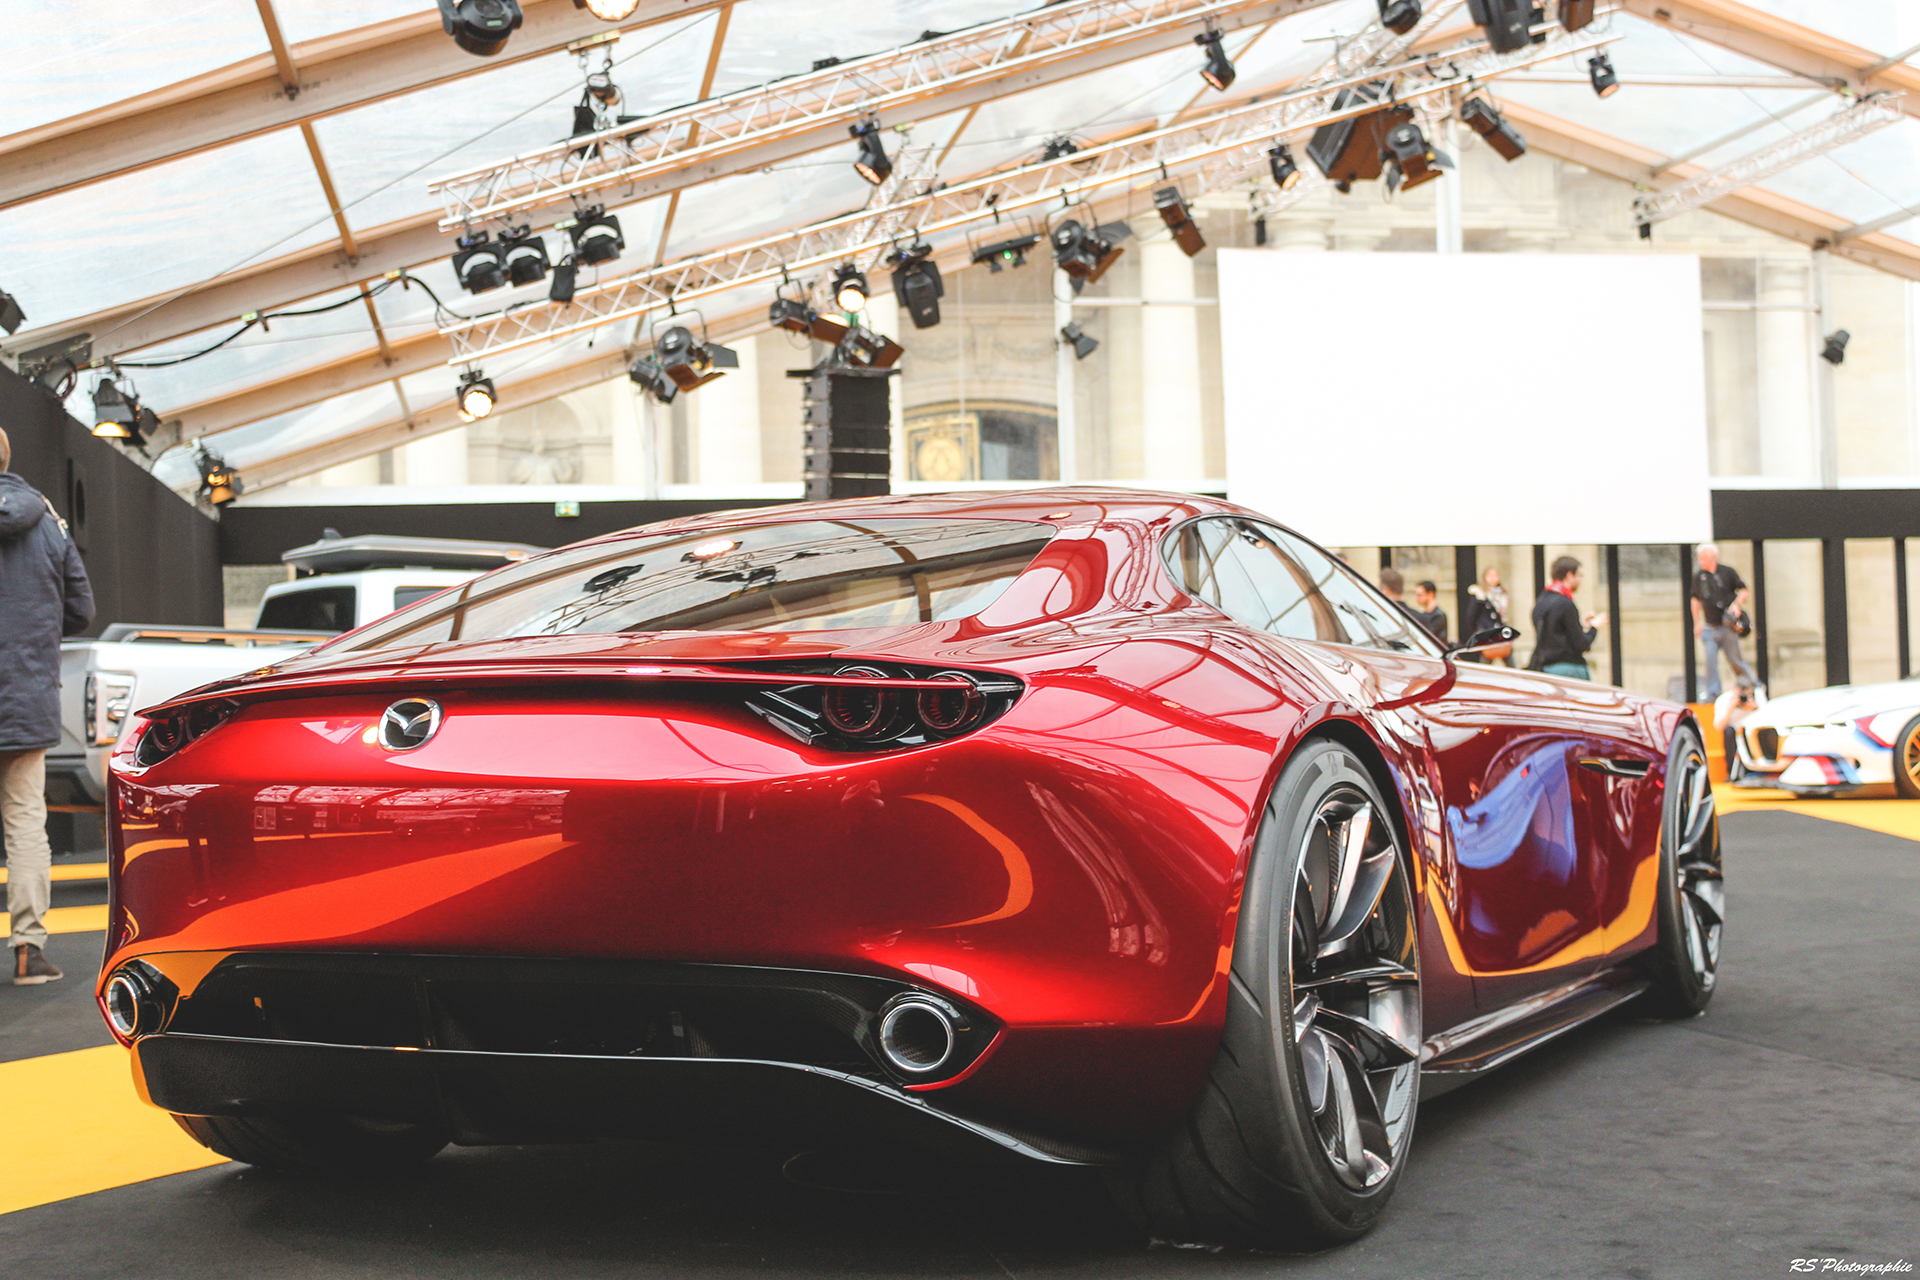 Mazda RX Vision - arrière / rear - Exposition Concept cars 2016 - Arnaud Demasier RS Photographie